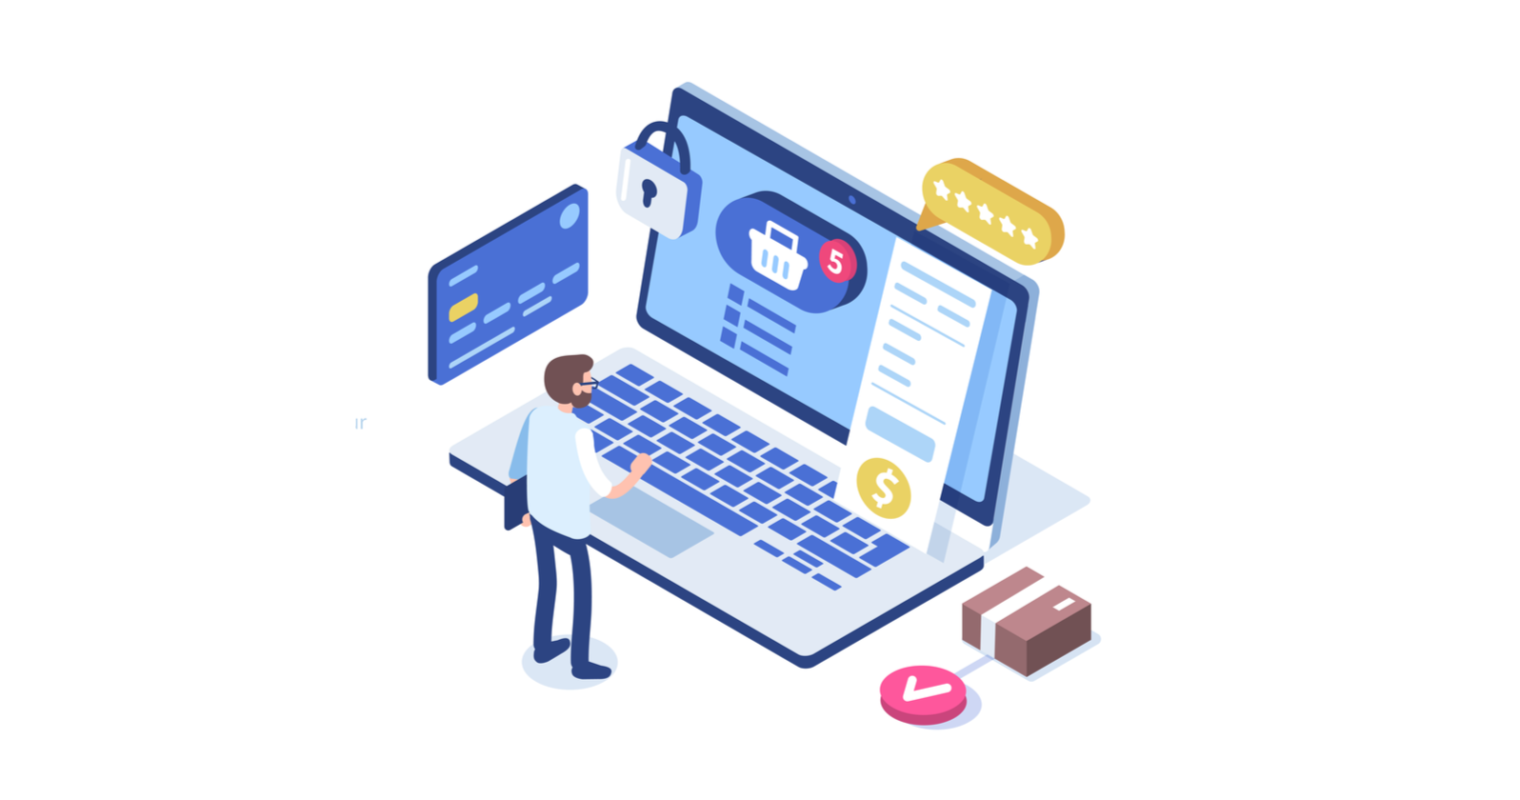 How Ecommerce Stores Can Care About Customers During the Pandemic